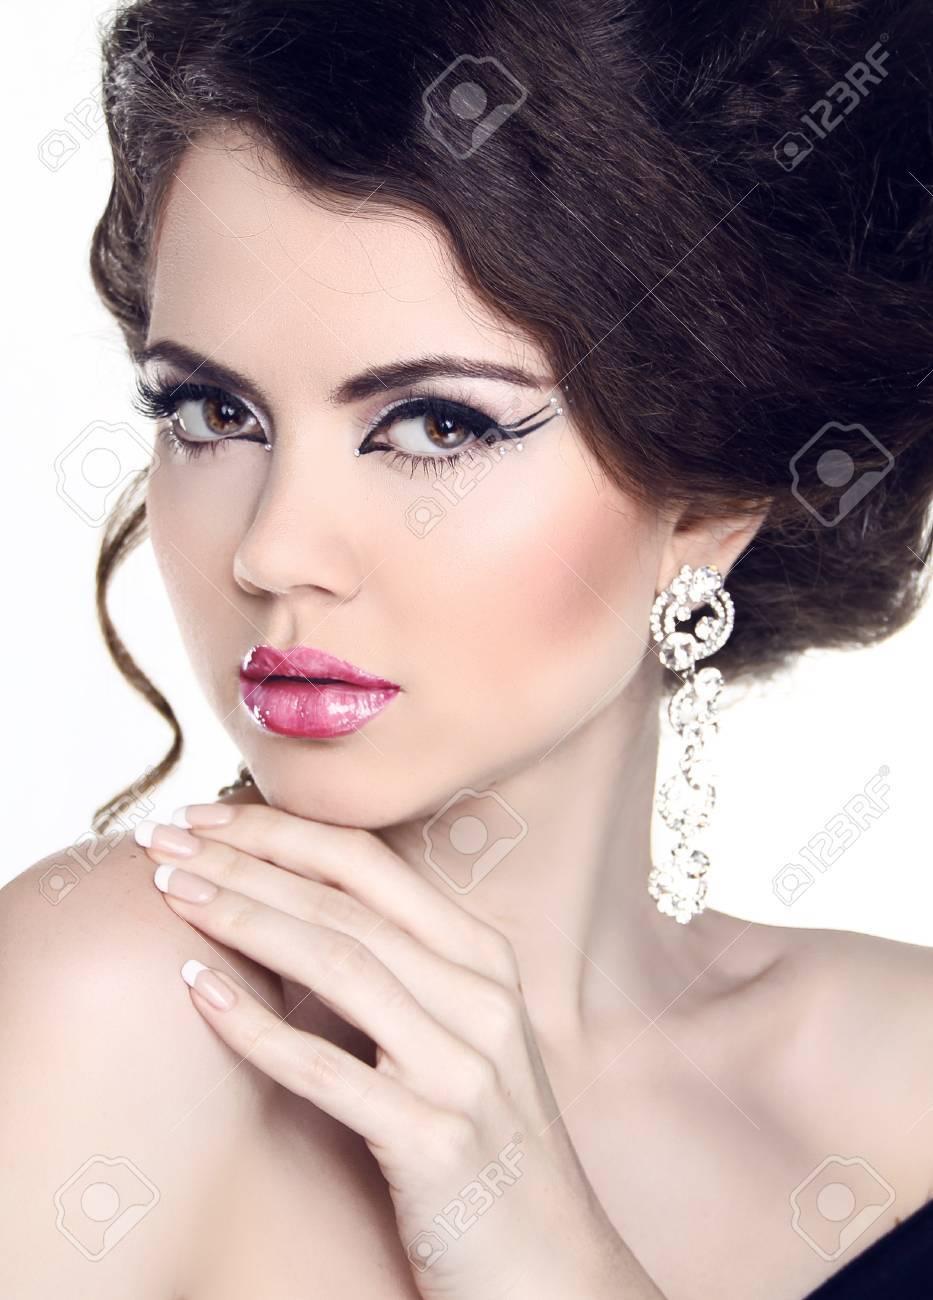 Fashion Beauty Woman Portrait. Manicure and Make-up. Hairstyle. Jewelry Stock Photo - 20590664